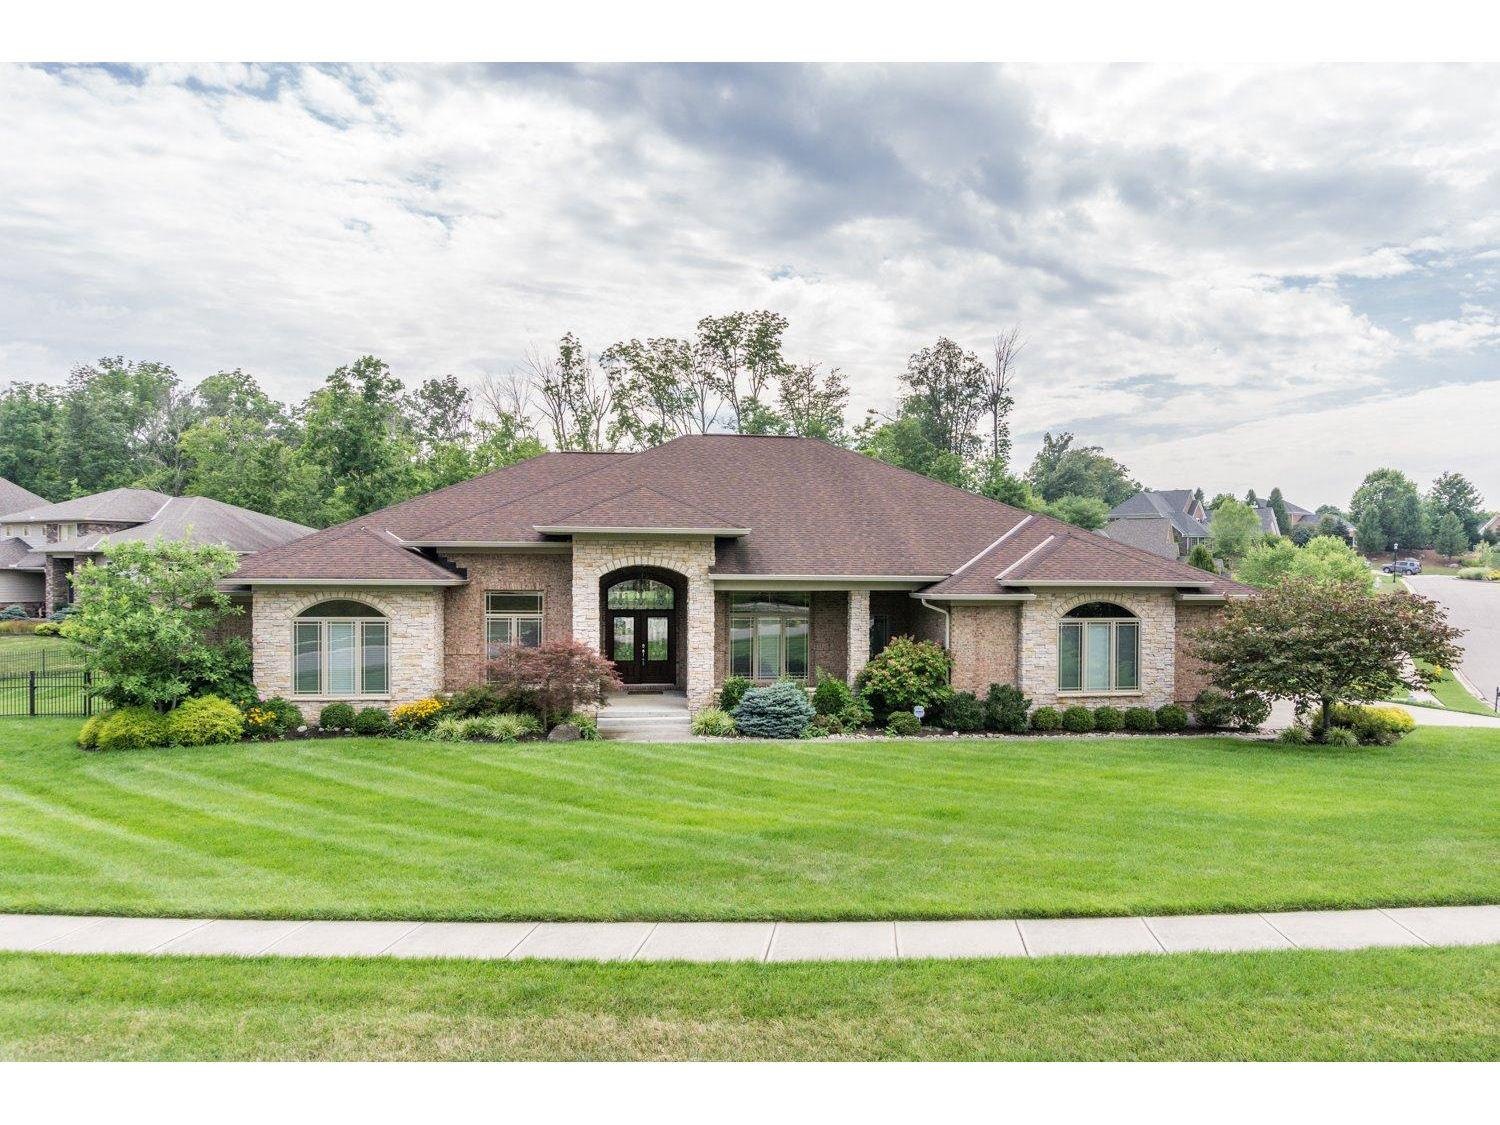 5547 Pine Brook Cir Monfort Hts., OH